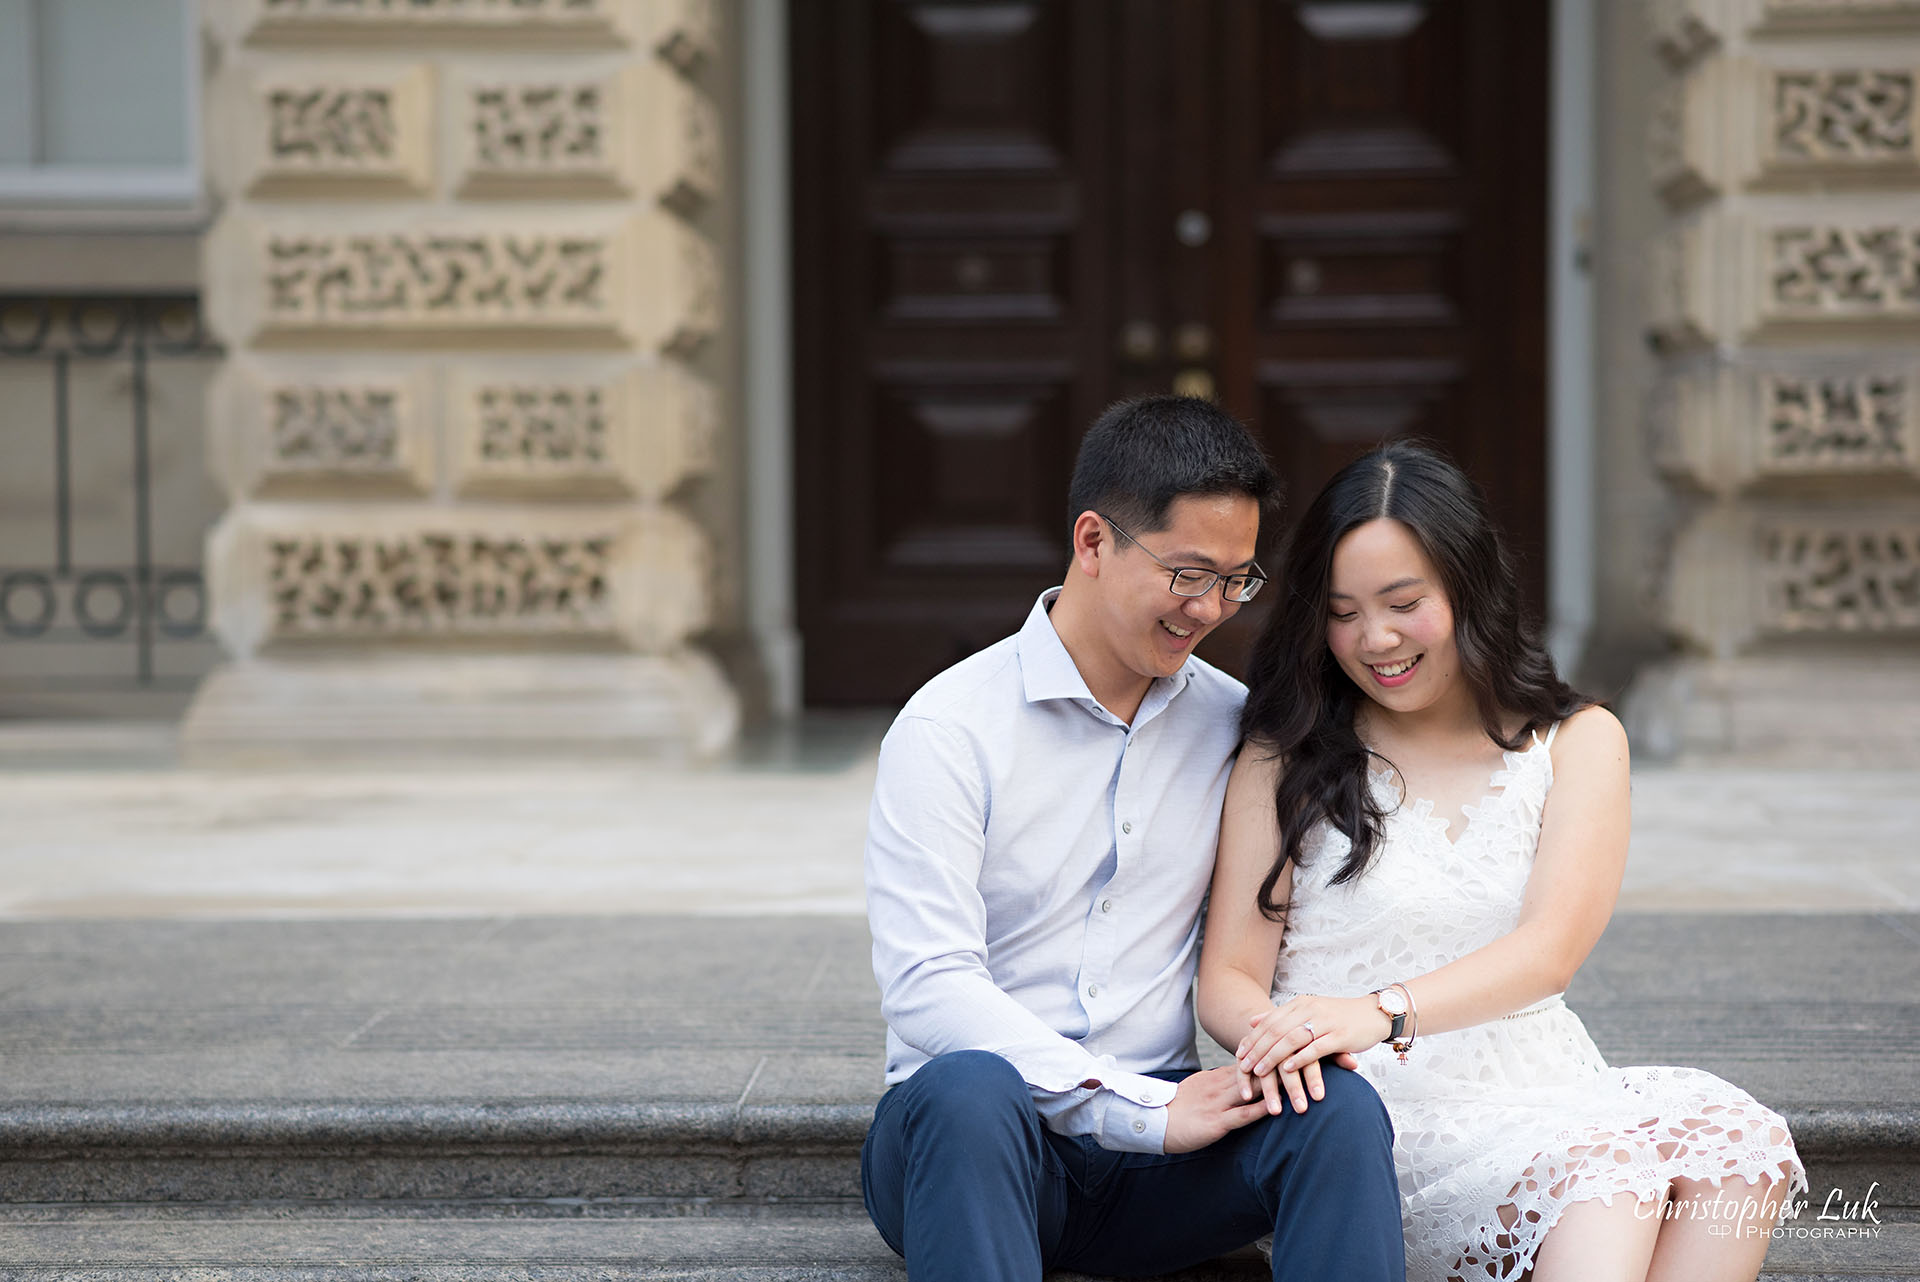 Christopher Luk Wedding Photographer Osgoode Hall Toronto Bride Groom Main Historic Building Front Steps Holding Hands Sitting Together Christopher Luk Wedding Photographer Osgoode Hall Toronto Bride Groom Main Historic Building Front Cobblestone Holding Hands Walking Together Looking at Each Other Portrait Natural Candid Photojournalistic